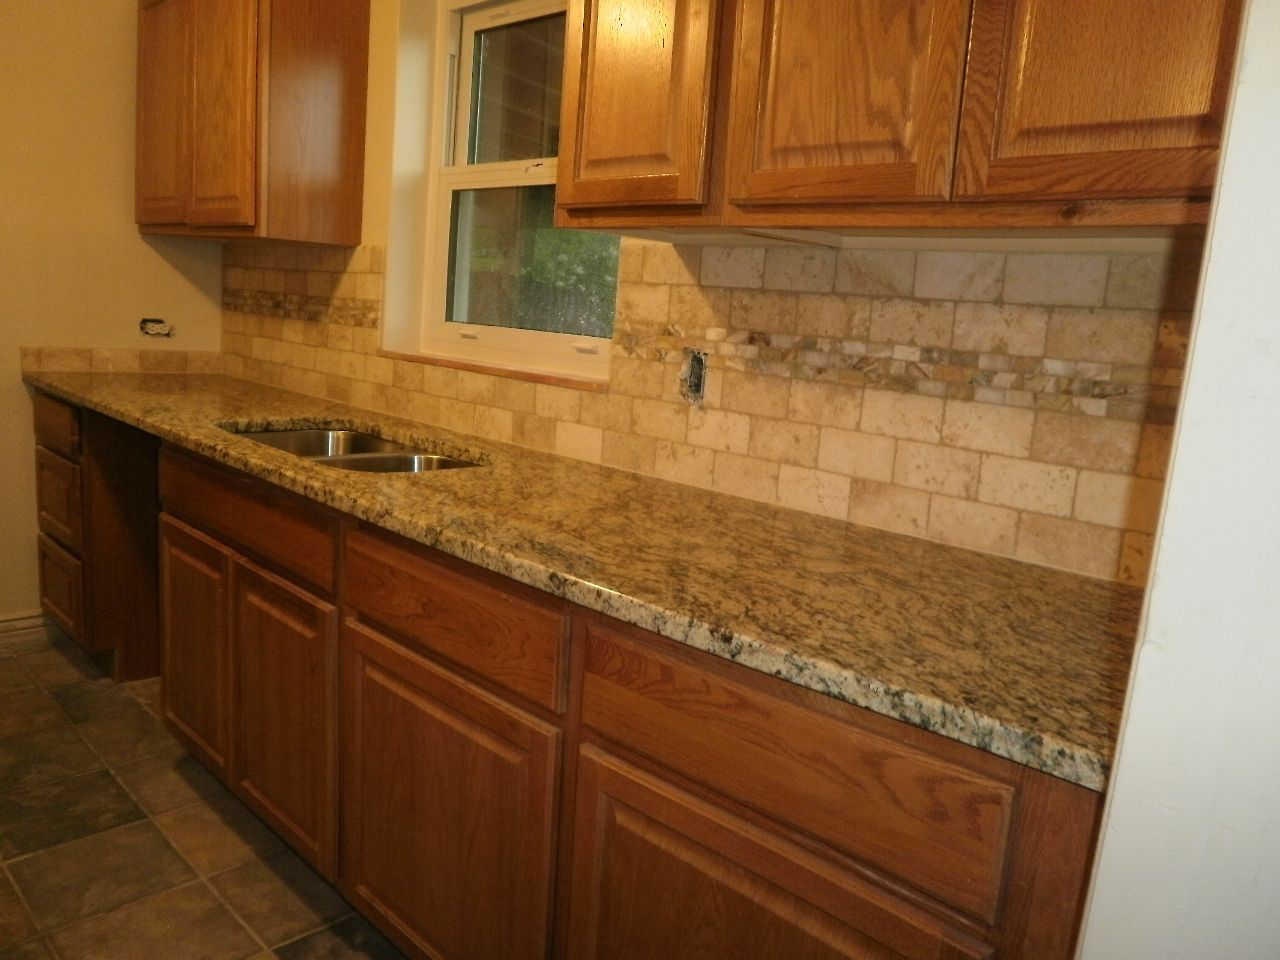 kitchen backsplash ideas granite countertops backsplash